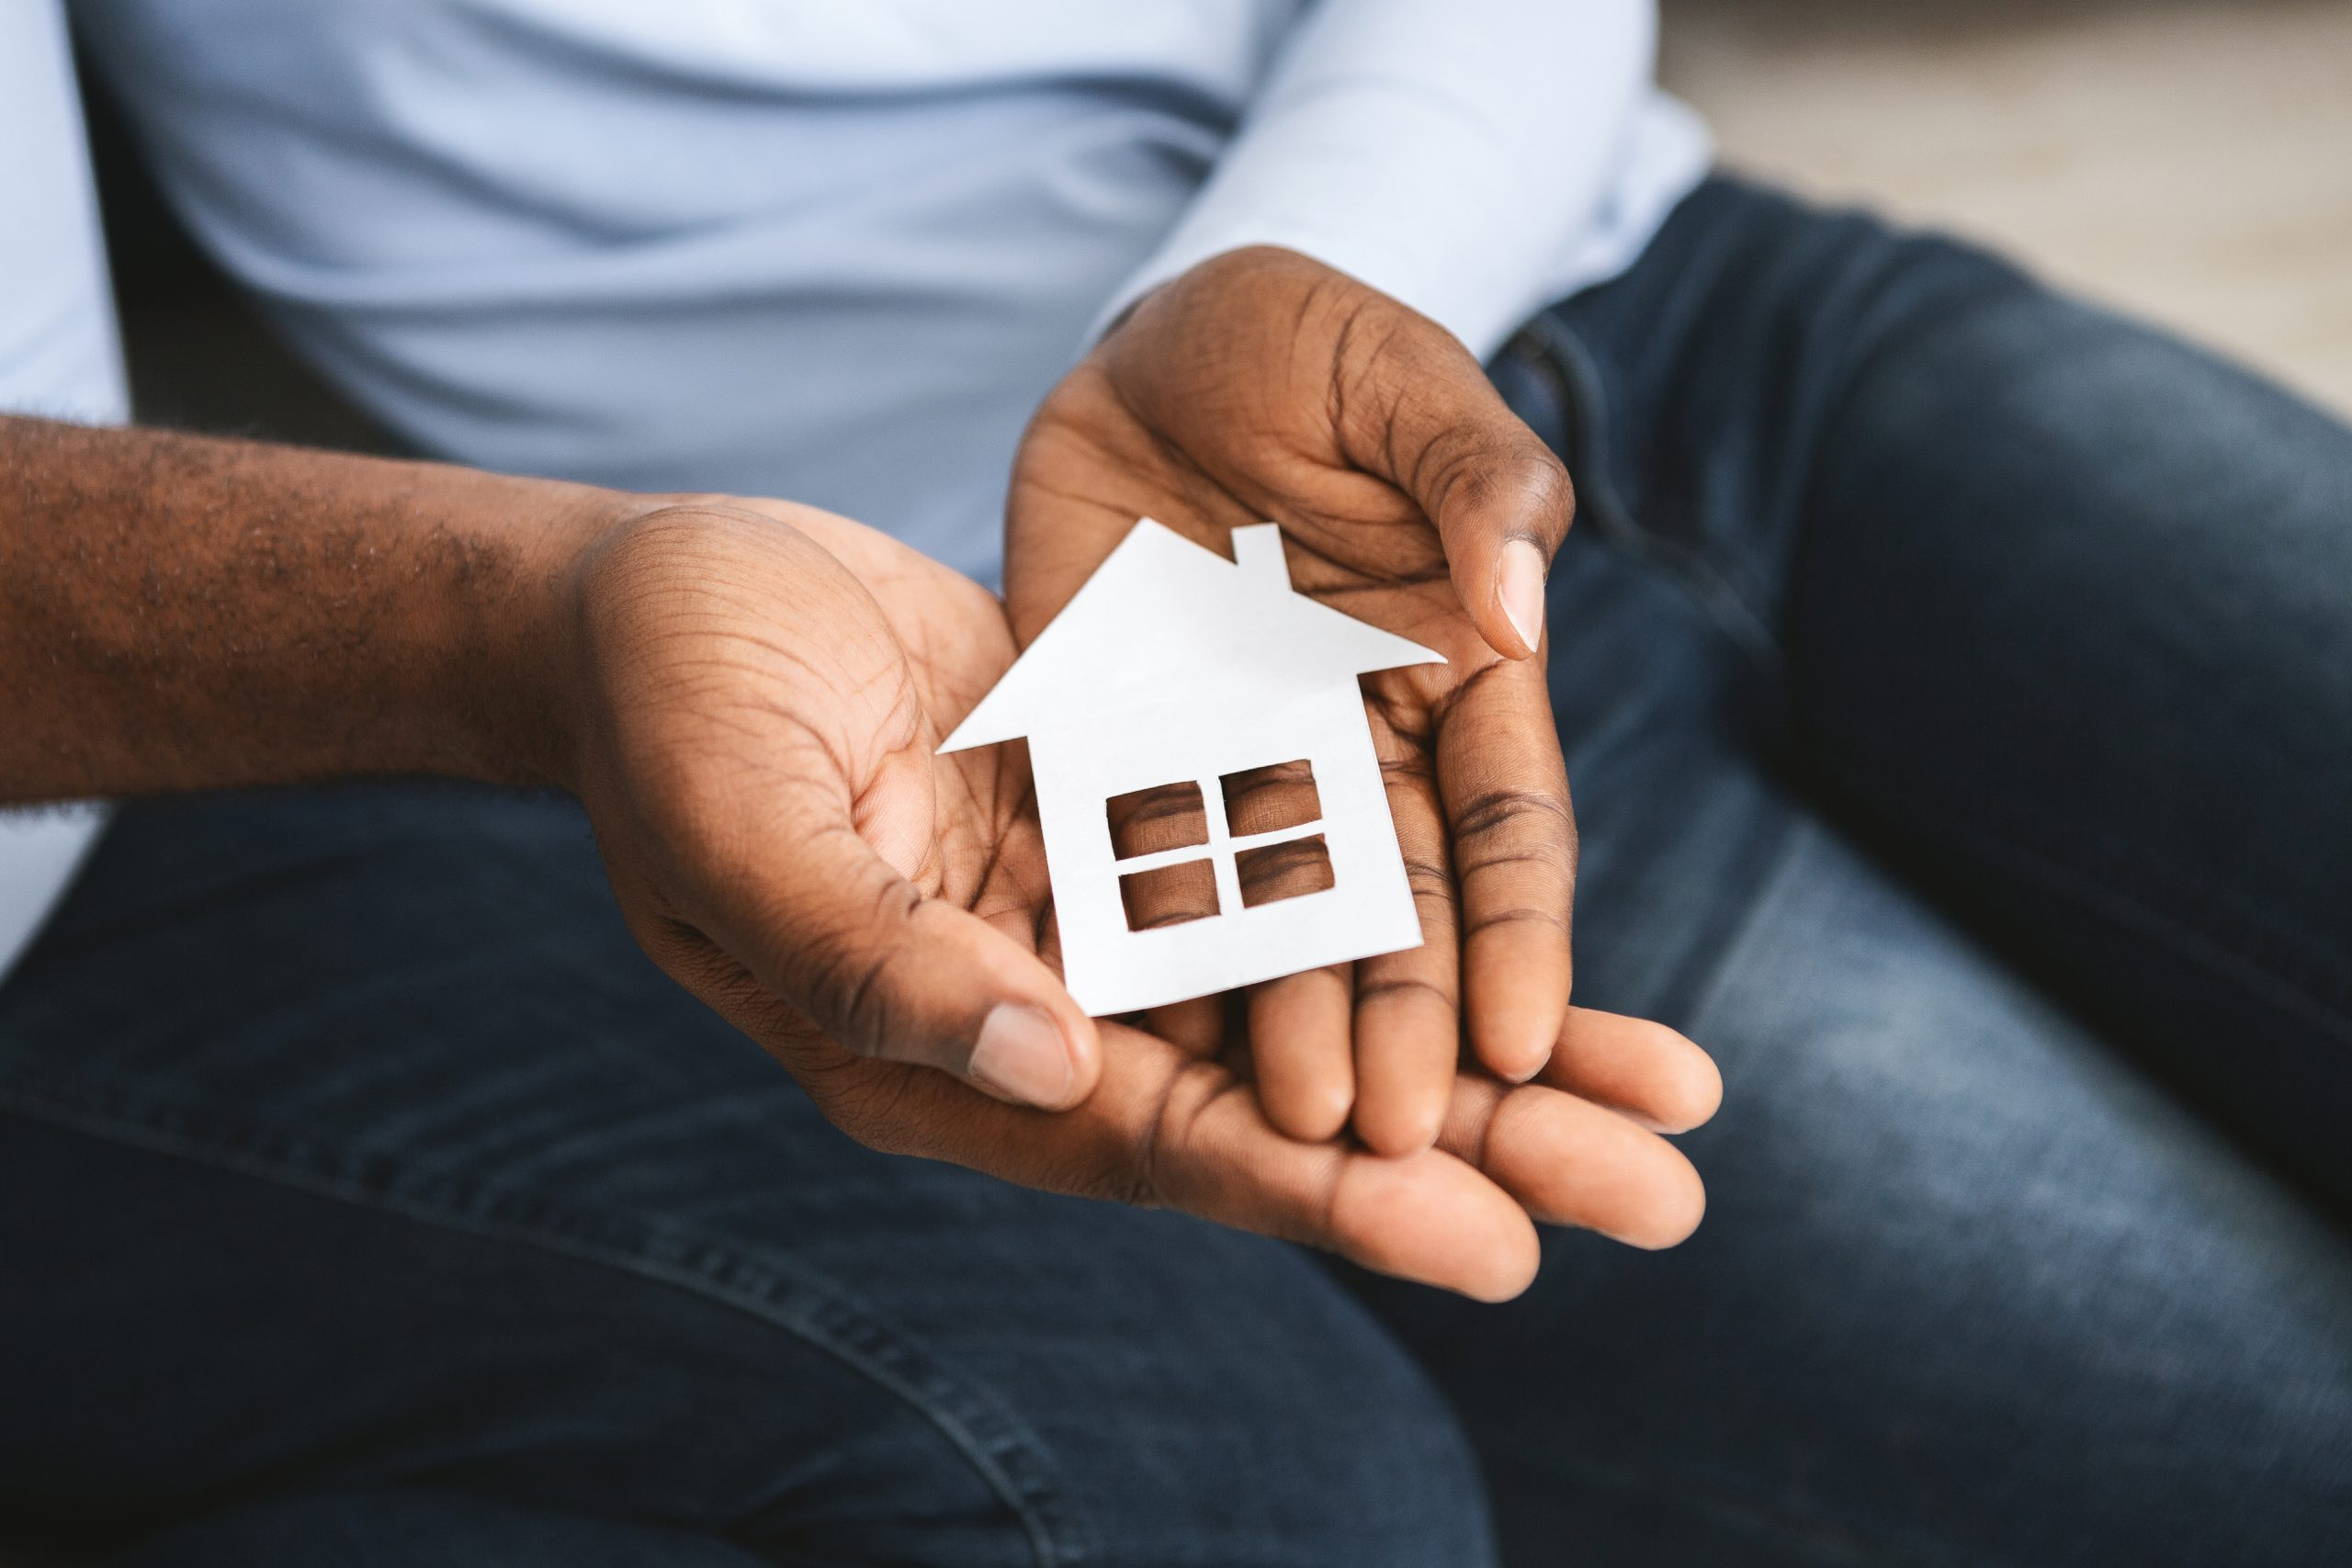 Credit score and home buying